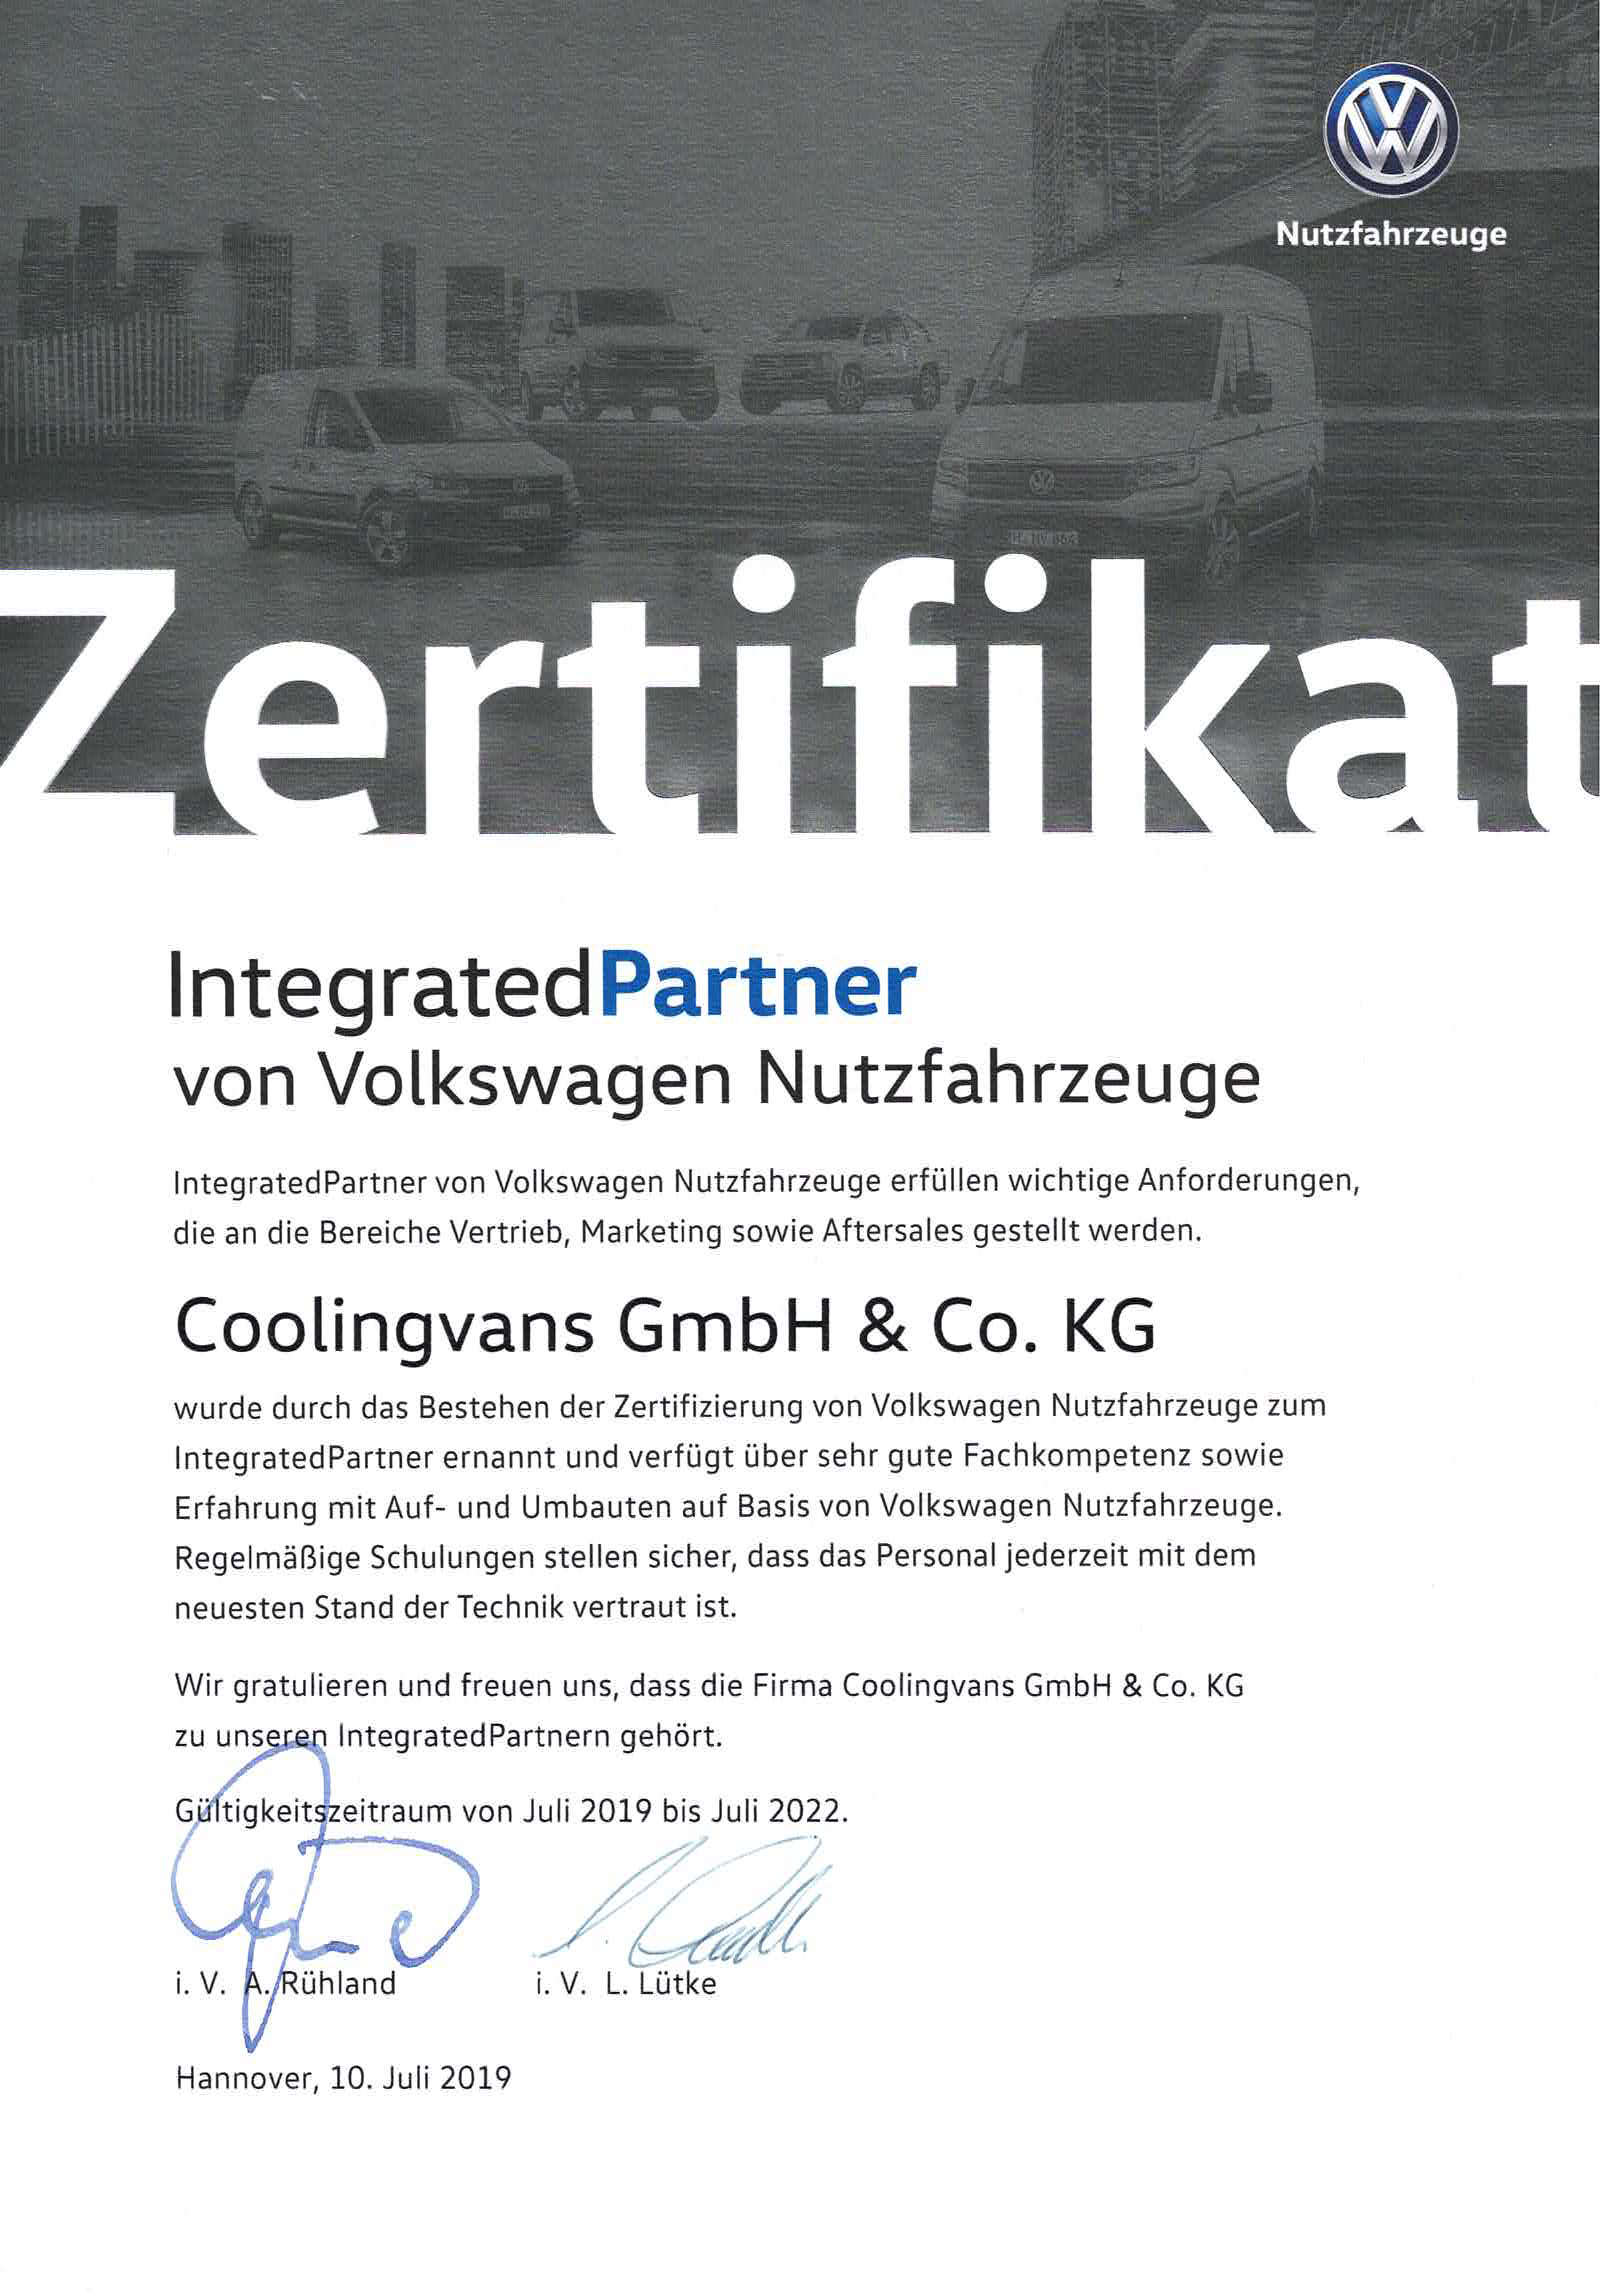 VW Integrated Partner